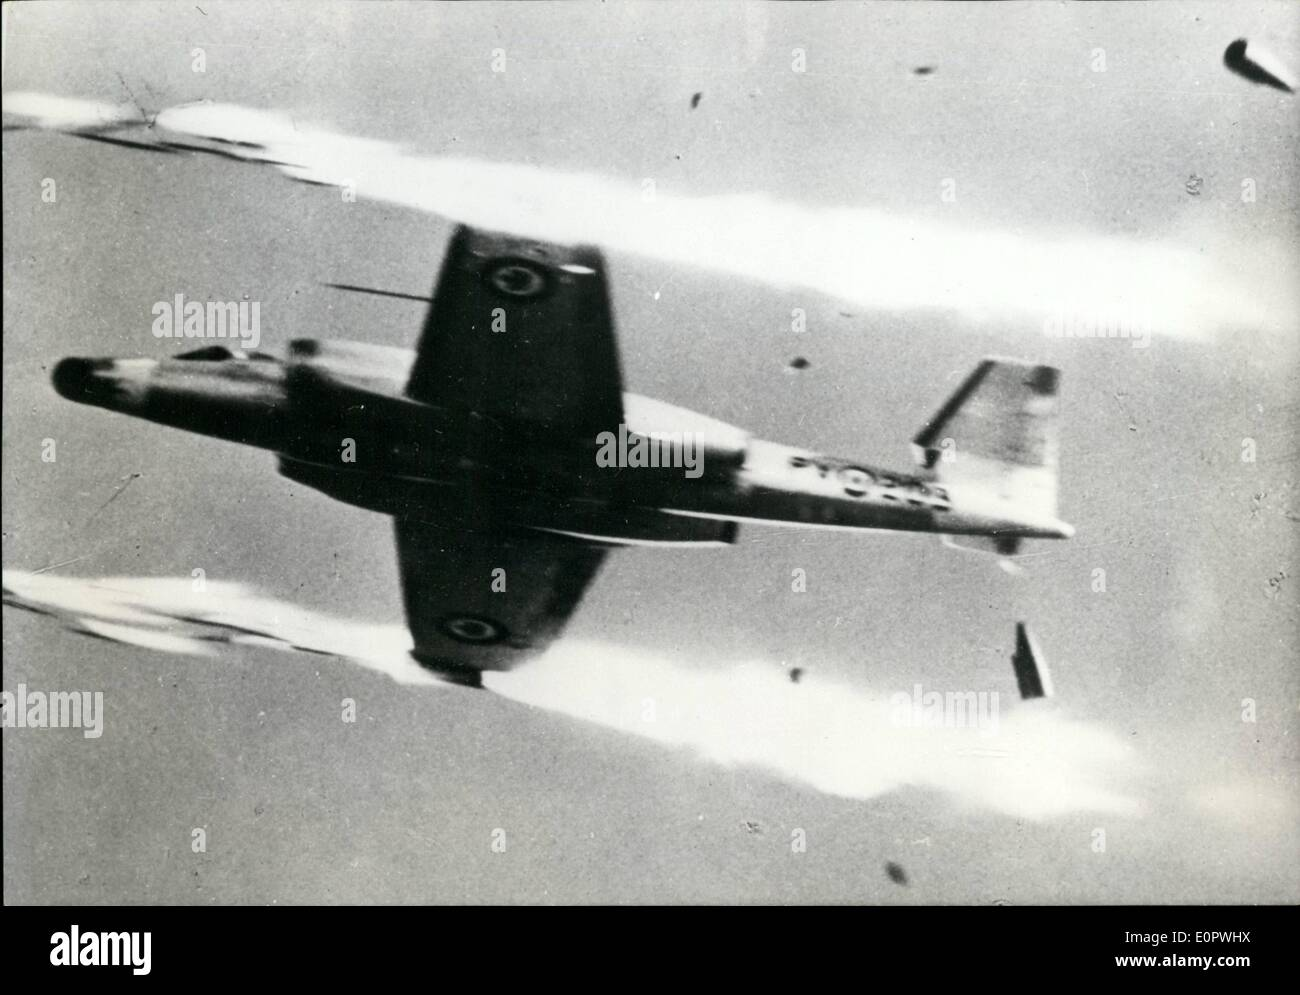 Jan. 01, 1957 - As Quick As A Rocket With her new of 100 MK Canuck fighter Canada is now reported to possess the quickest jet in the world. Equipped with machine guns and rocket supports the new plane can reach the height of 40,000 feet in record time. Ops:- The new Canadian CF-100MK. 4B Canuck at full speed. - Stock Image